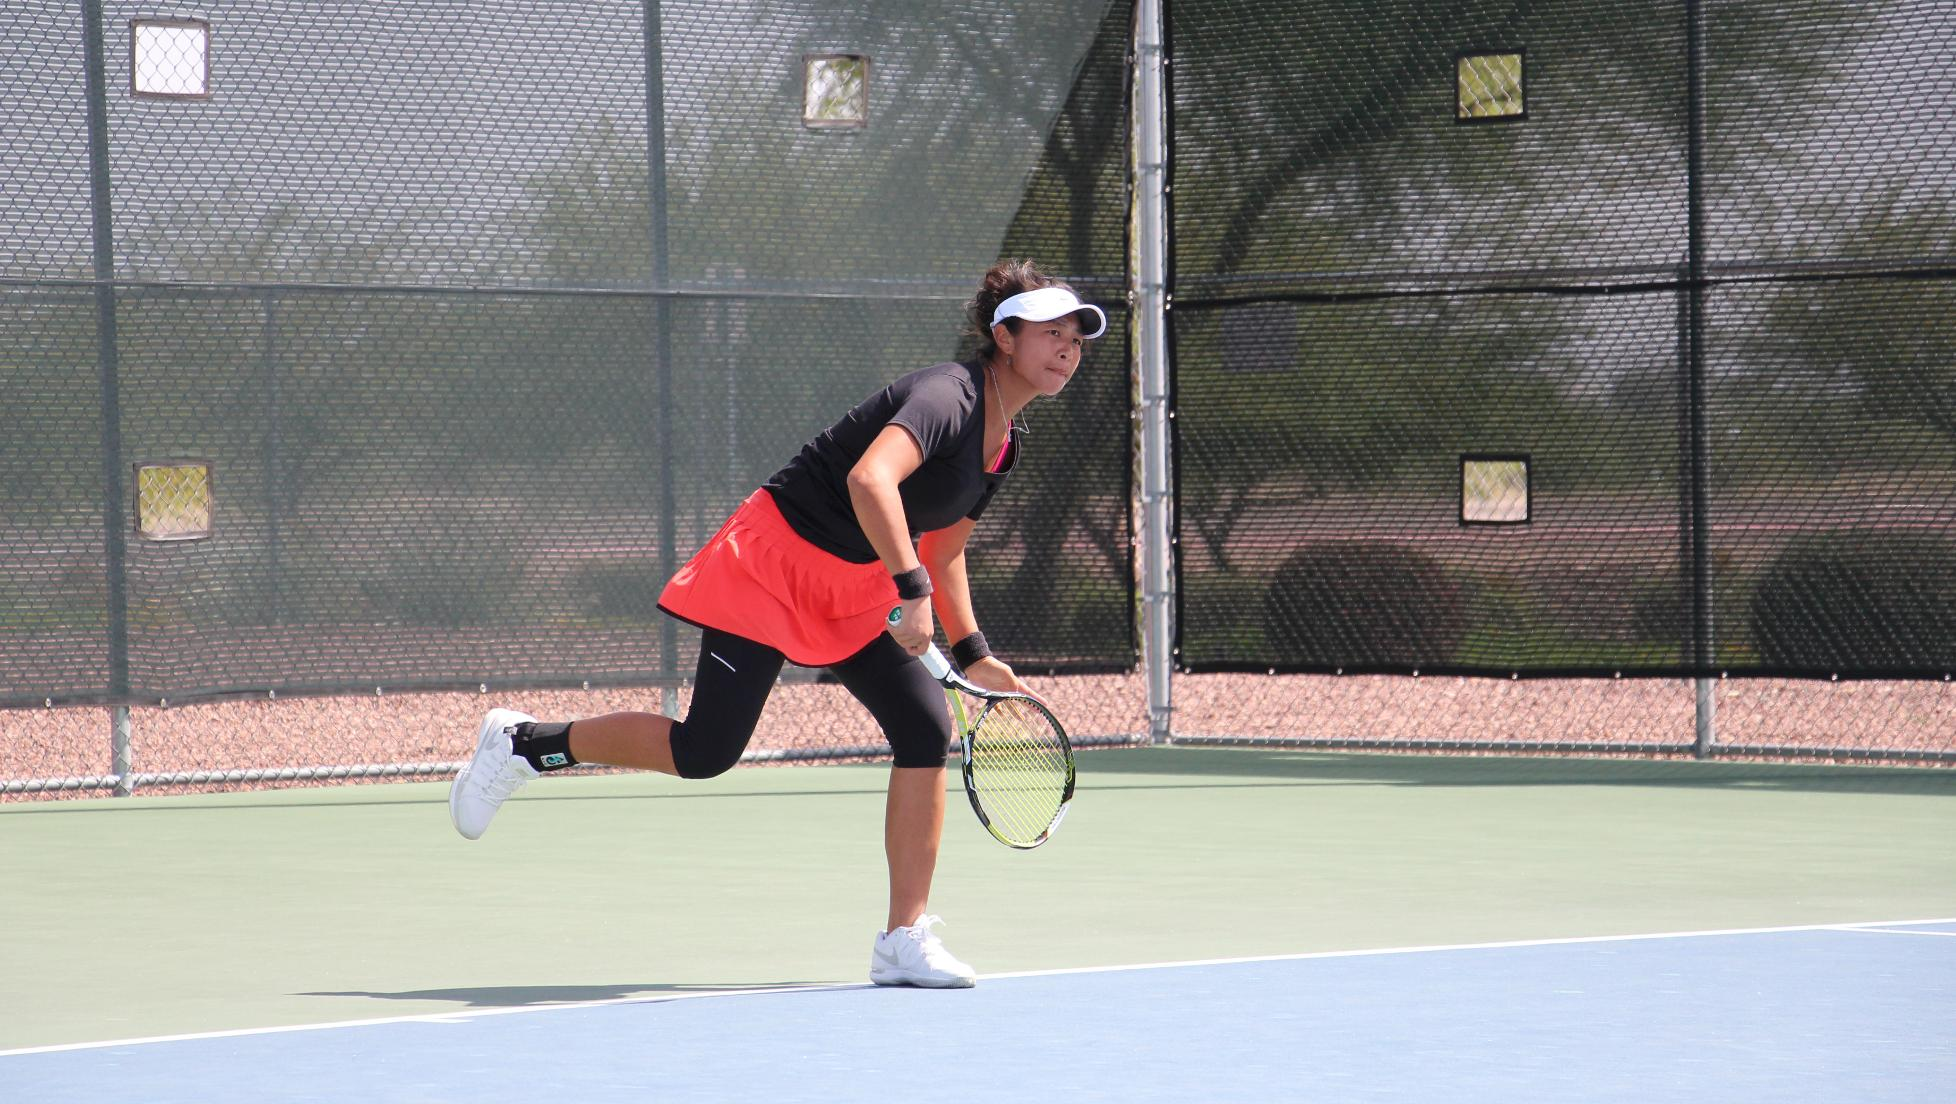 Singles play pushes Seasiders past Cougars